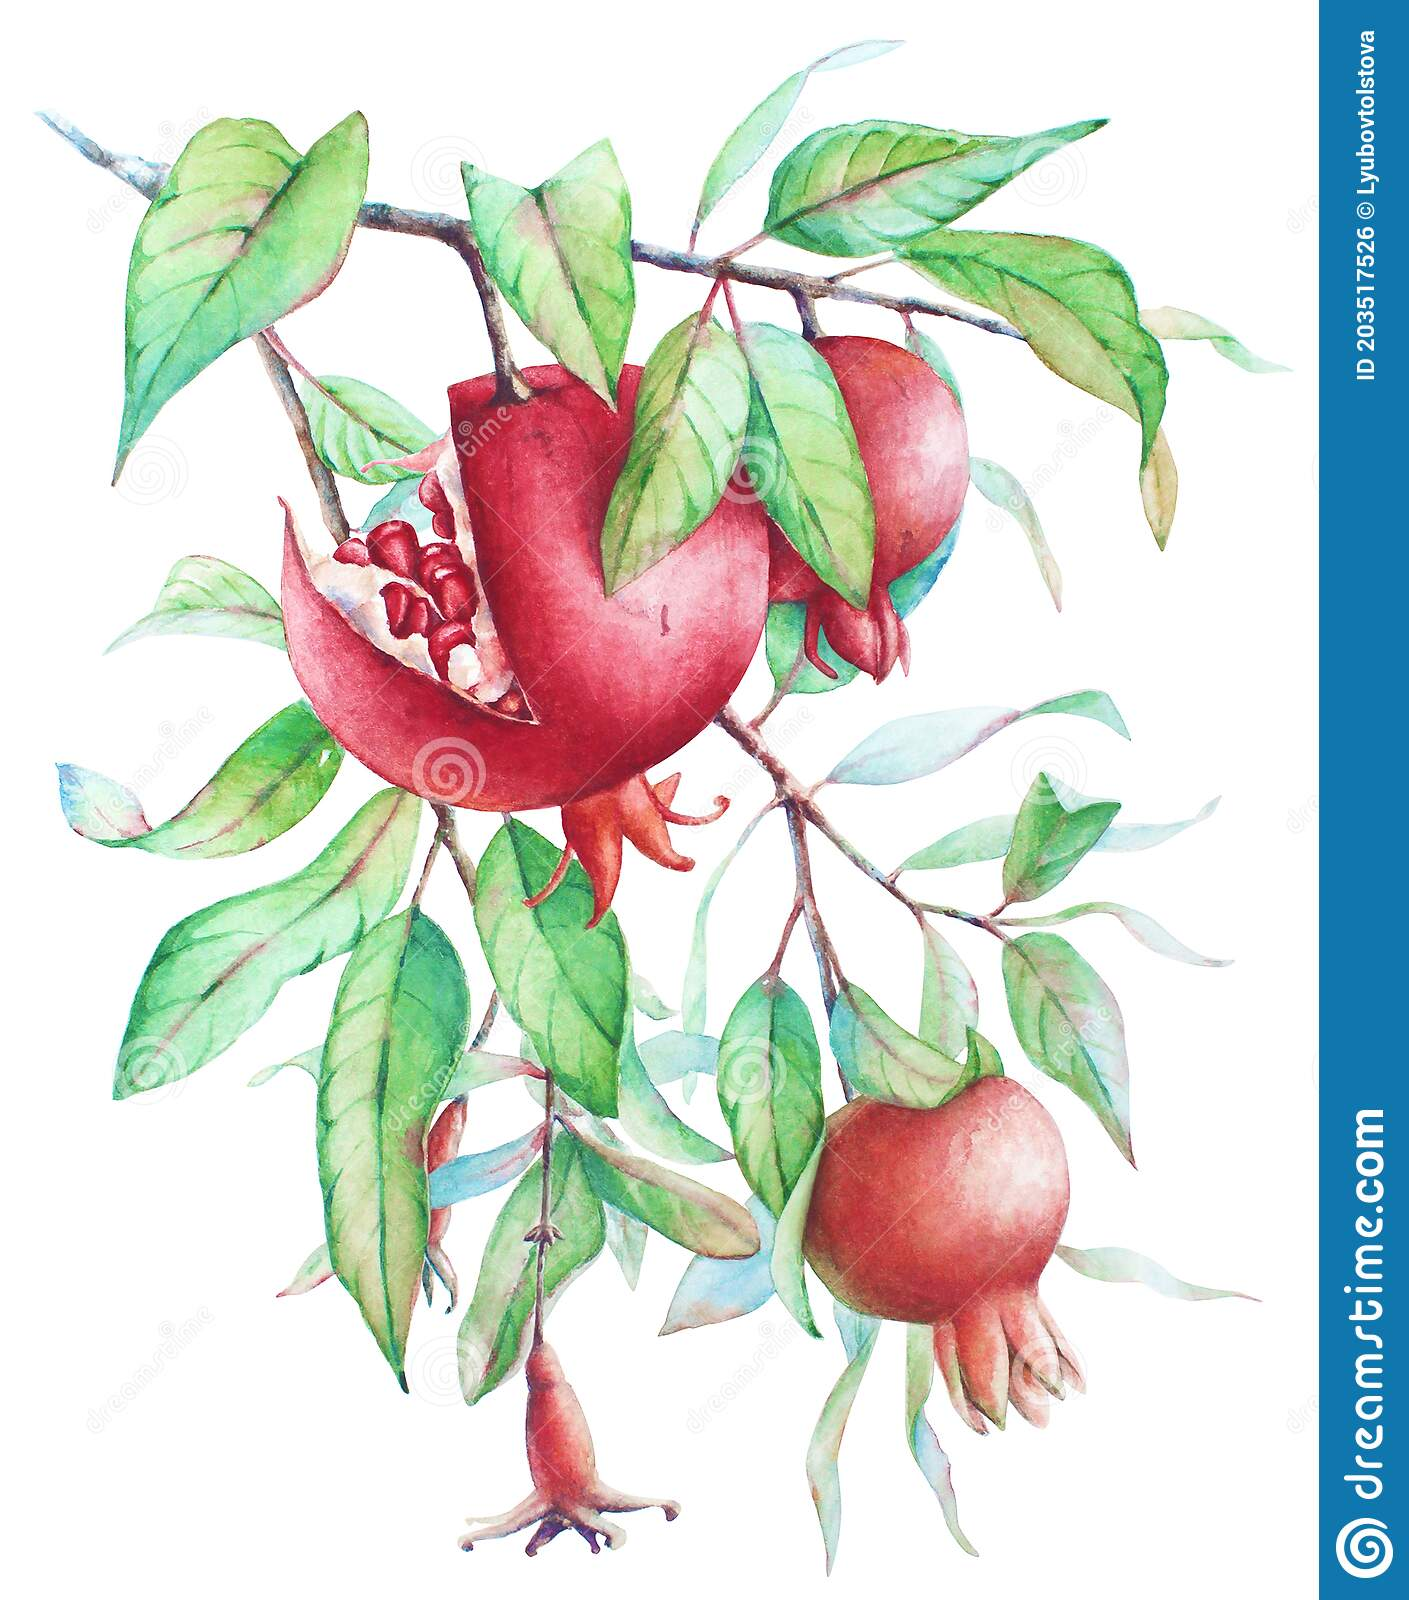 Watercolor Pomegranate Tree Branch With Fruits And Green Leaves Stock Illustration Illustration Of Background Isolated 203517526